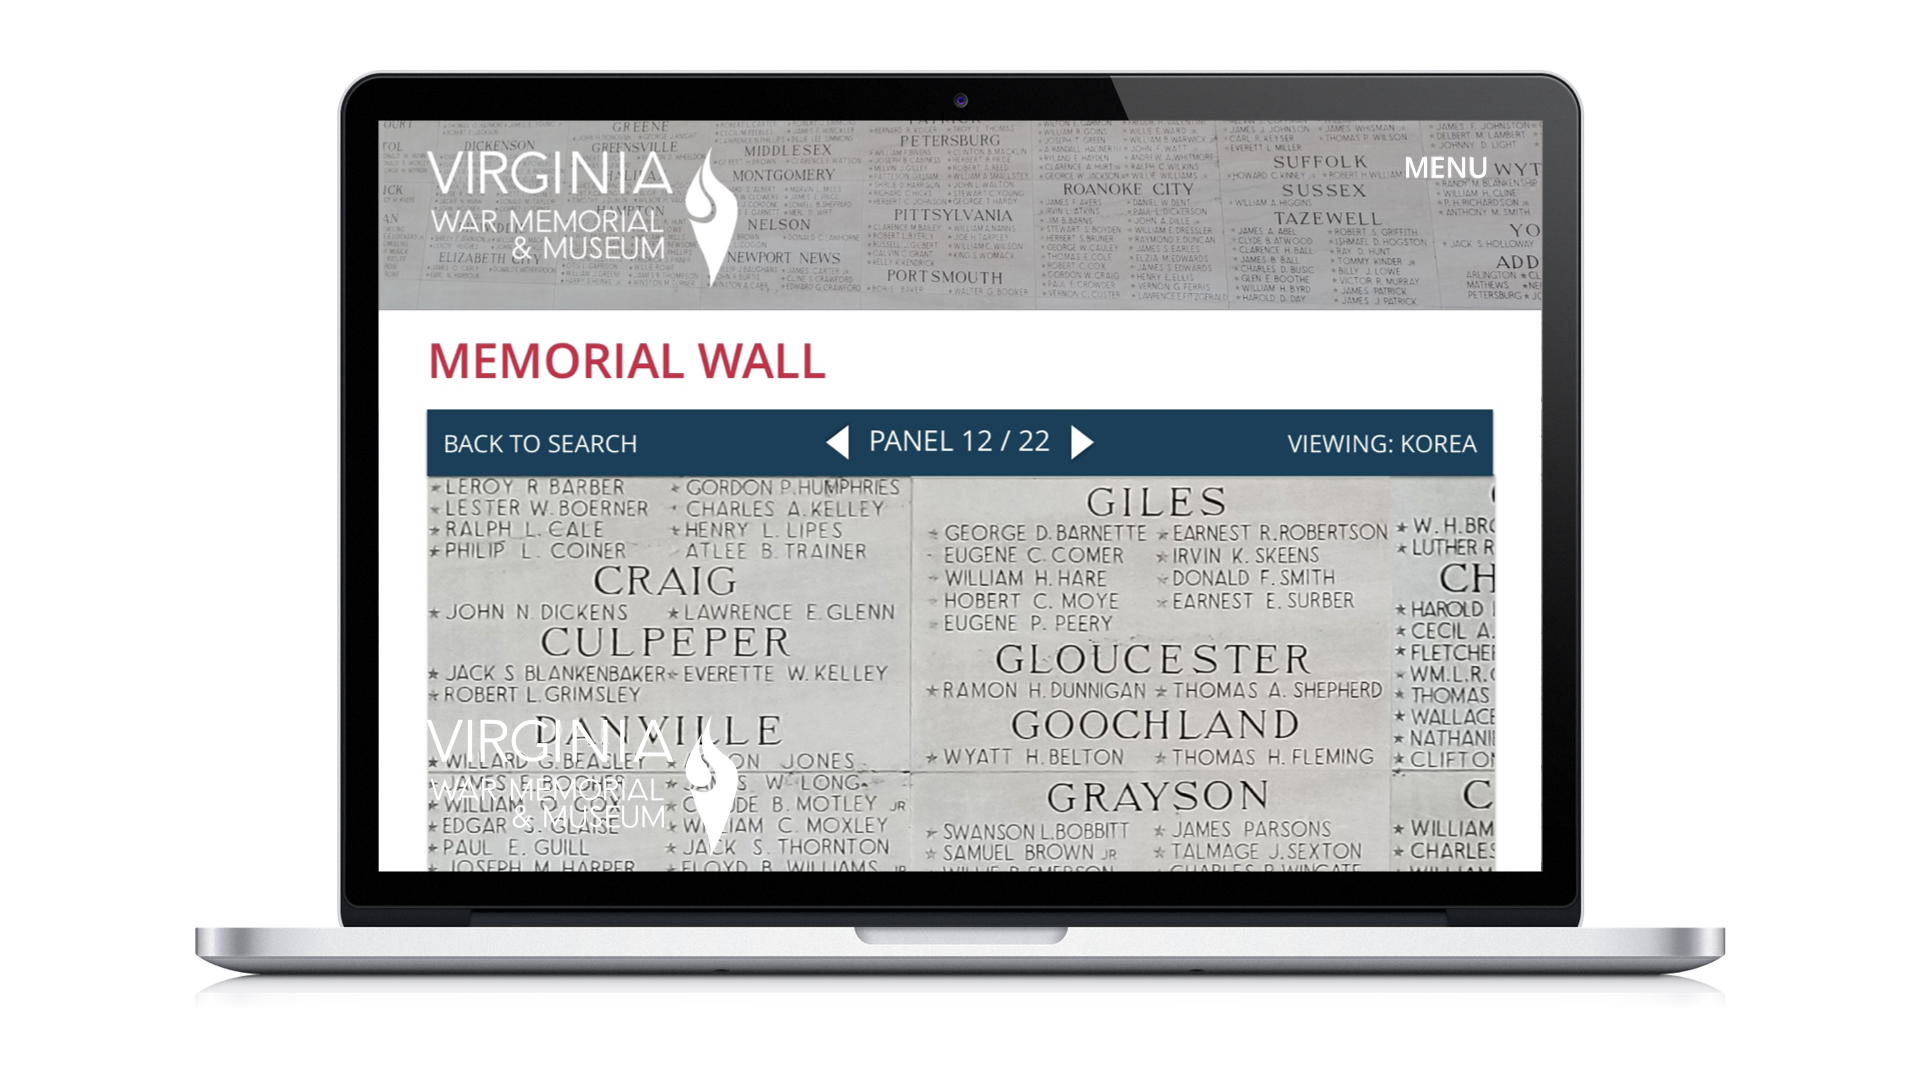 A notional screen displaying the wall of names on the VAWMM's website